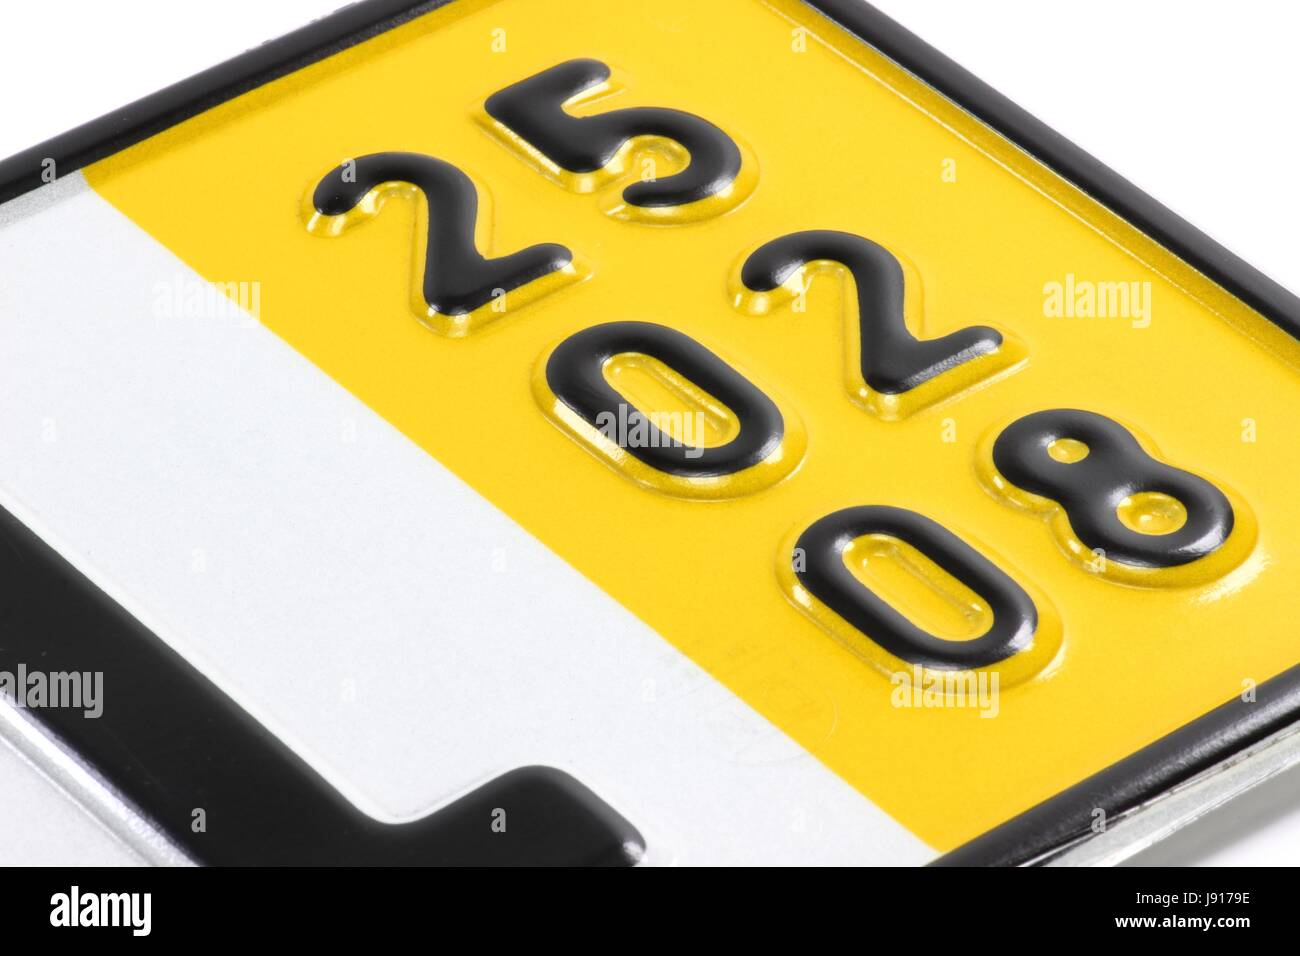 validity date of a German temporary registration plate (in this case February 25, 2008) - Stock Image